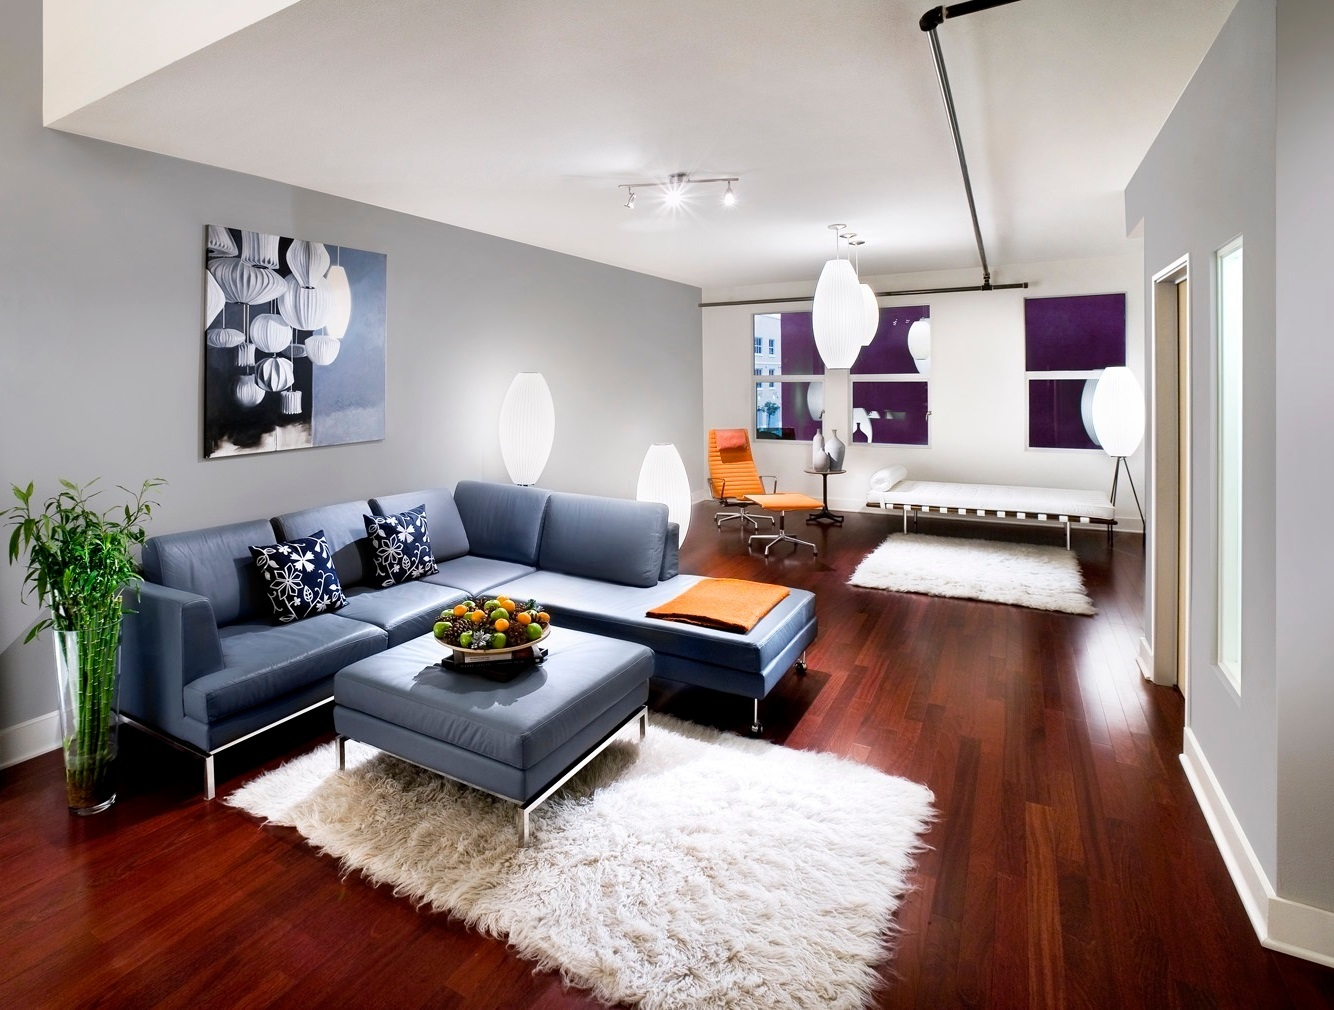 living-room-interior-awesome-l-shaped-cadet-blue-leather-sofa-with-track-arm-and-stainless-steel-frame-includes-the-right-side-chaise-also-squre-cadet-blue-leather-ottoman-coffee-t